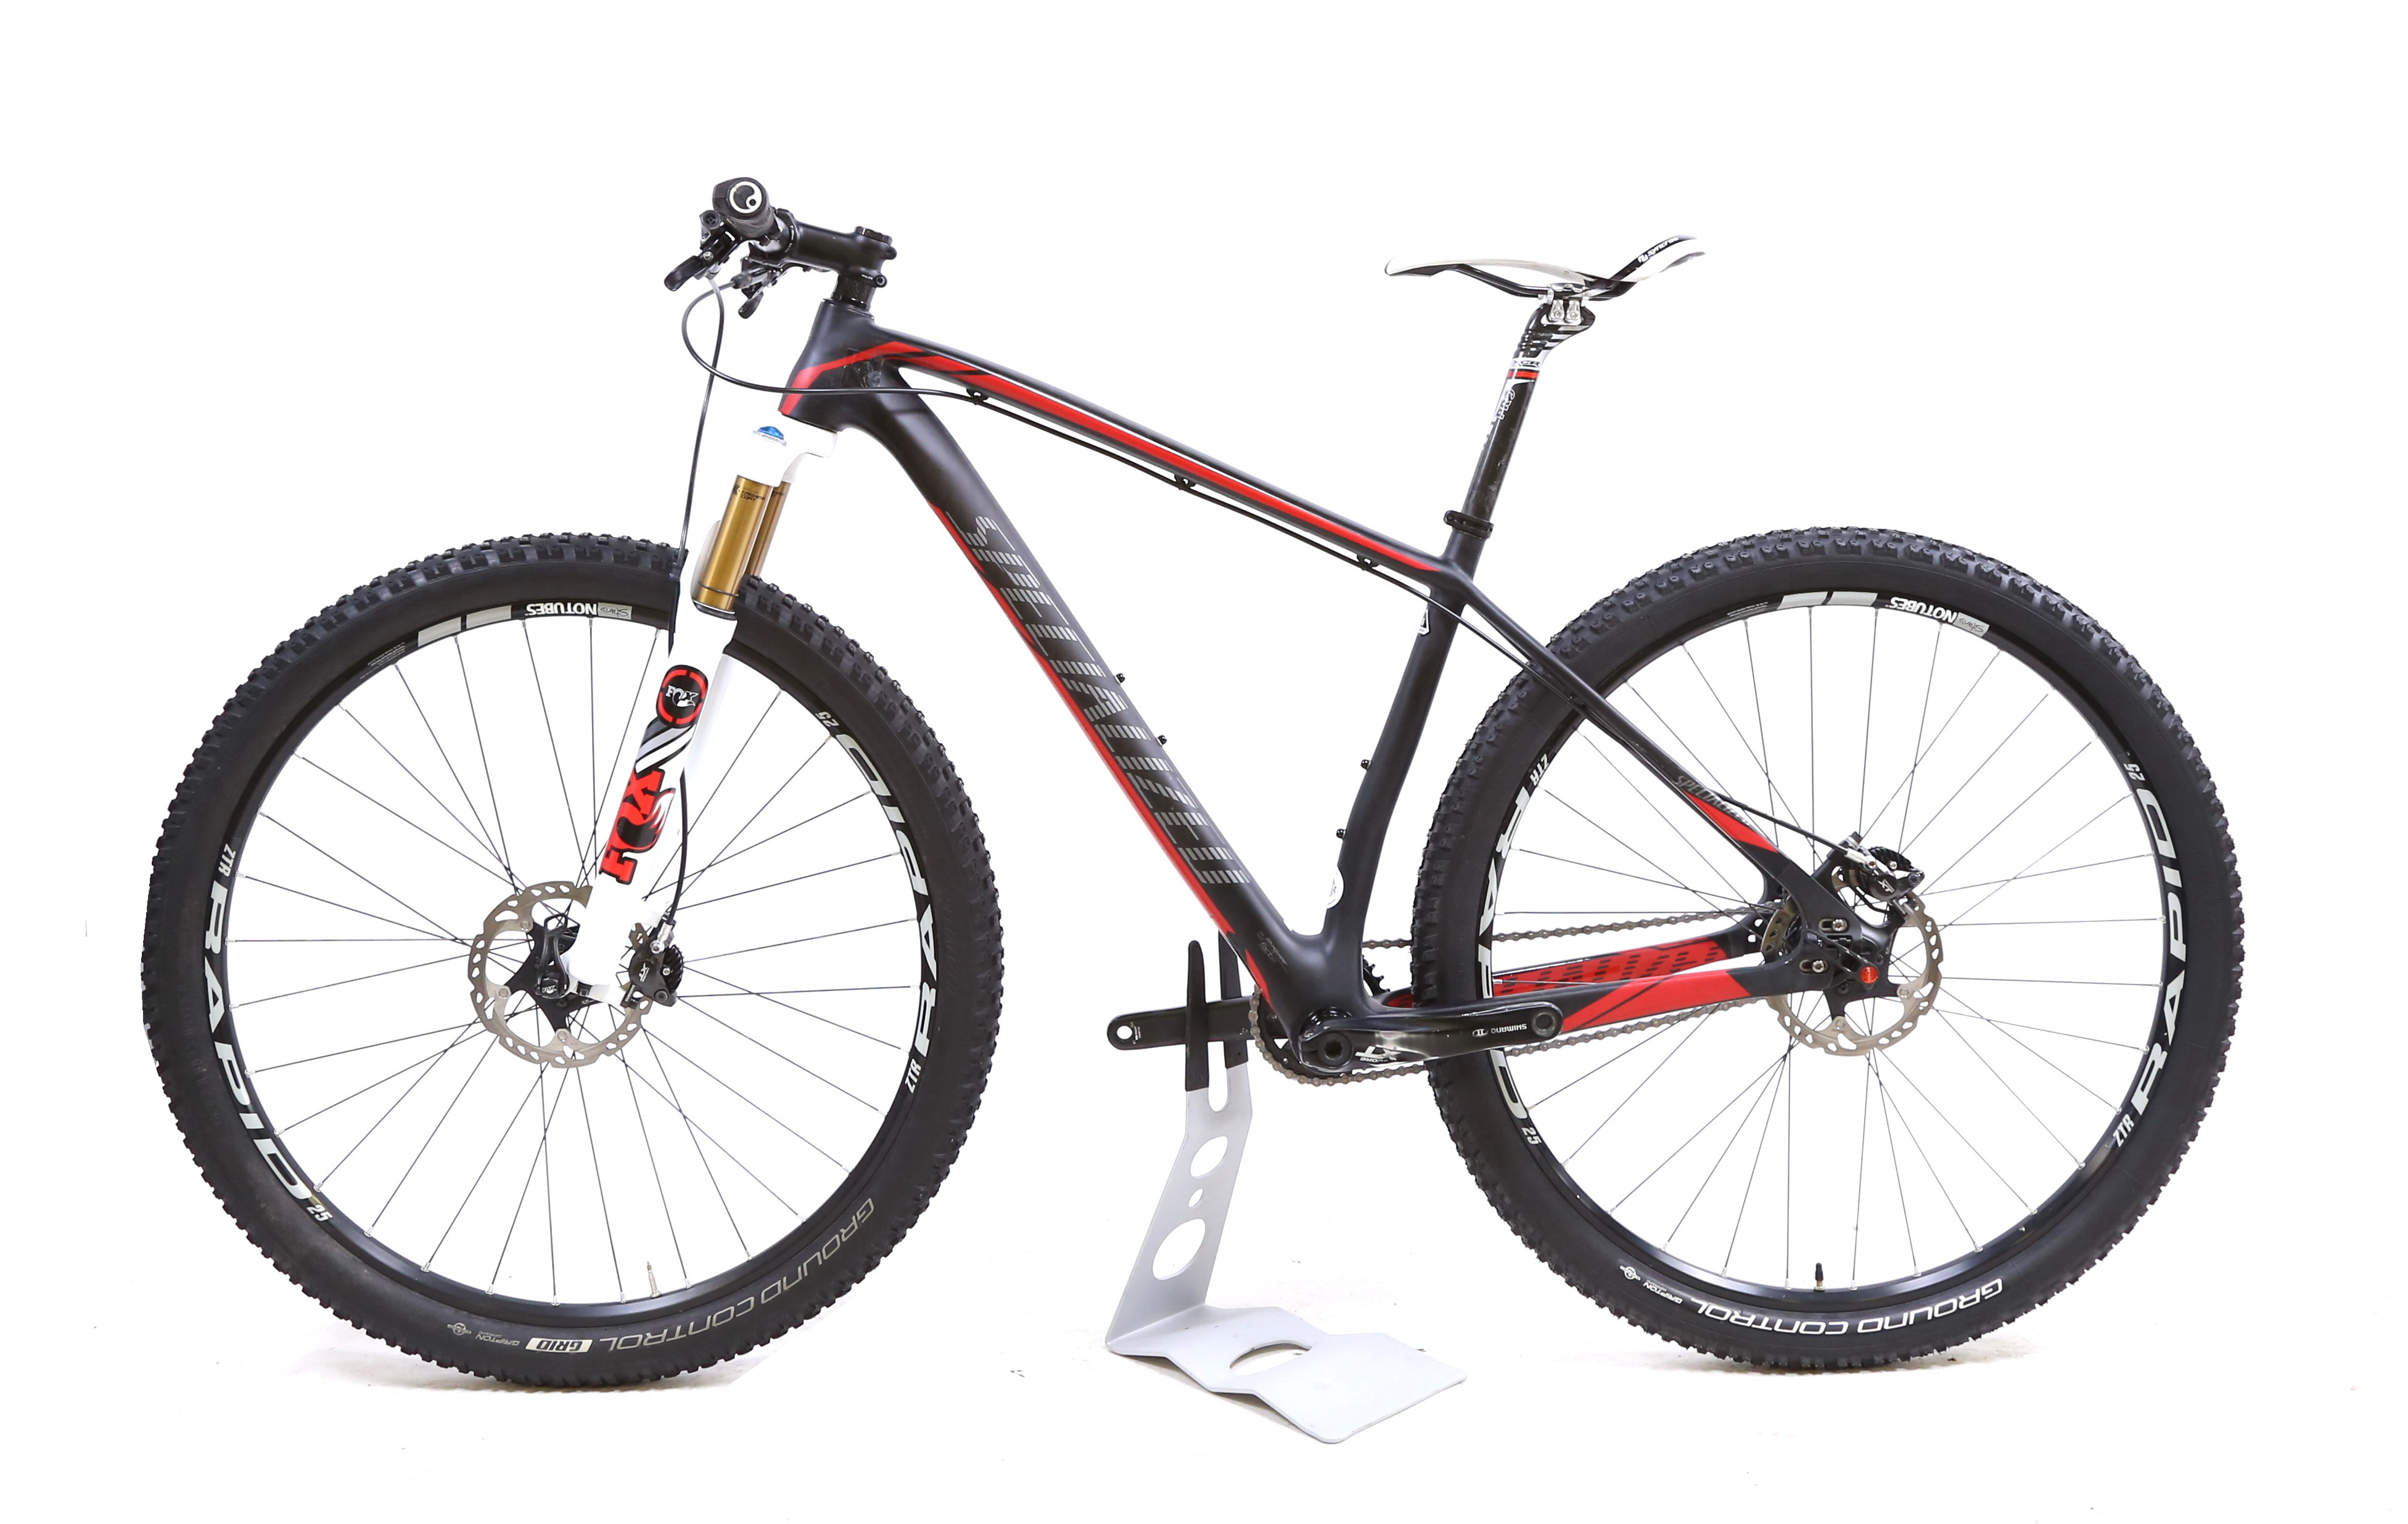 Specialized Stumpjumper Carbon HT 29 Single Speed Mountain